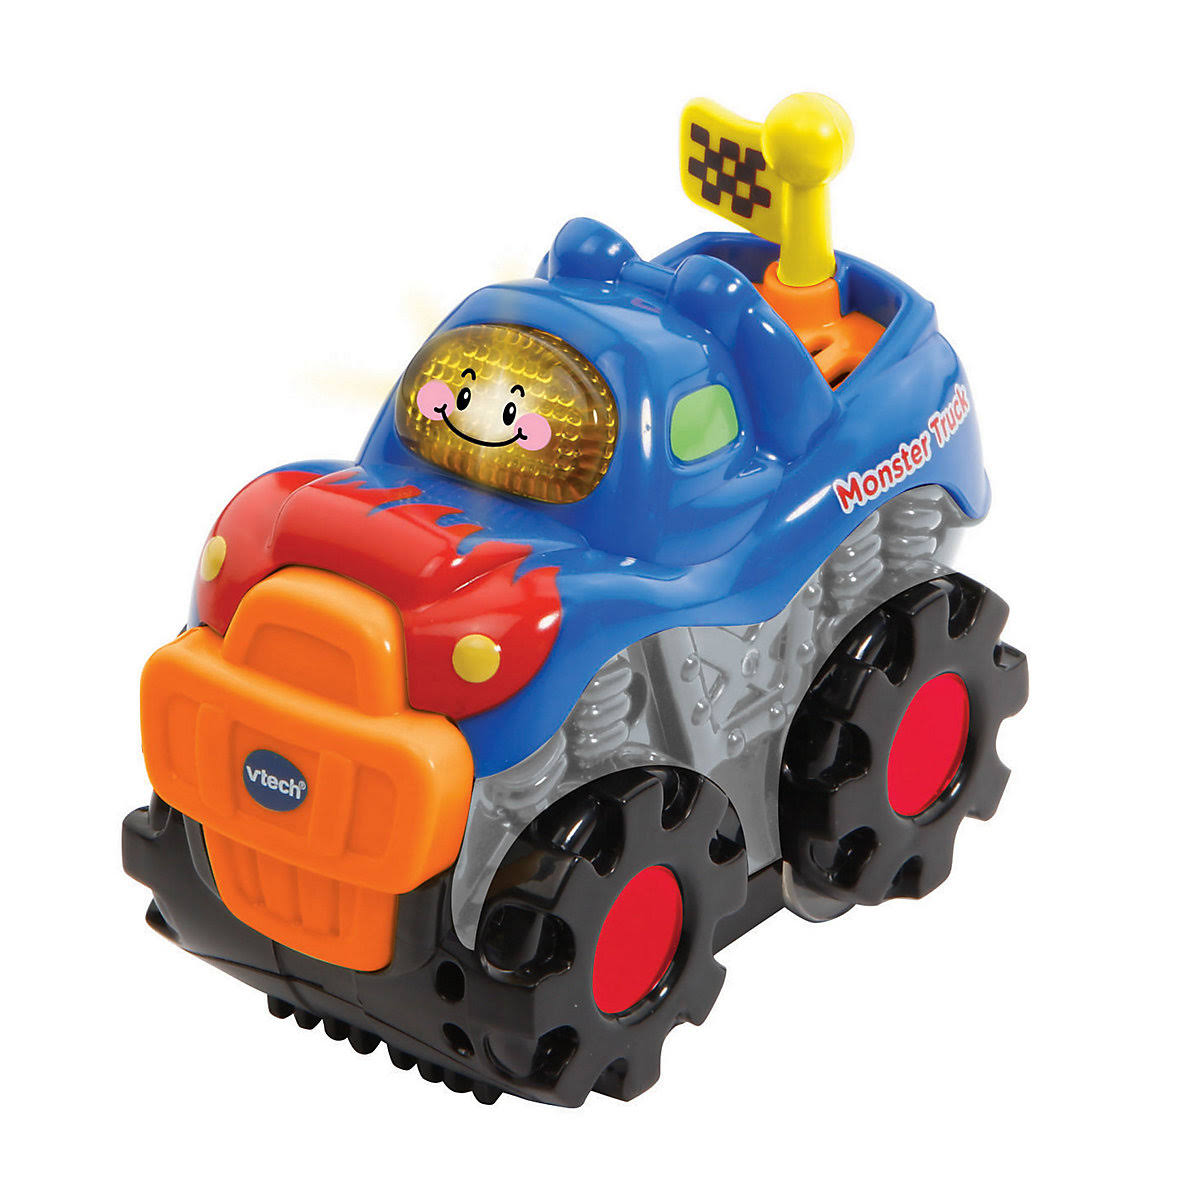 VTech Toot-Toot Drivers Monster Truck Toy